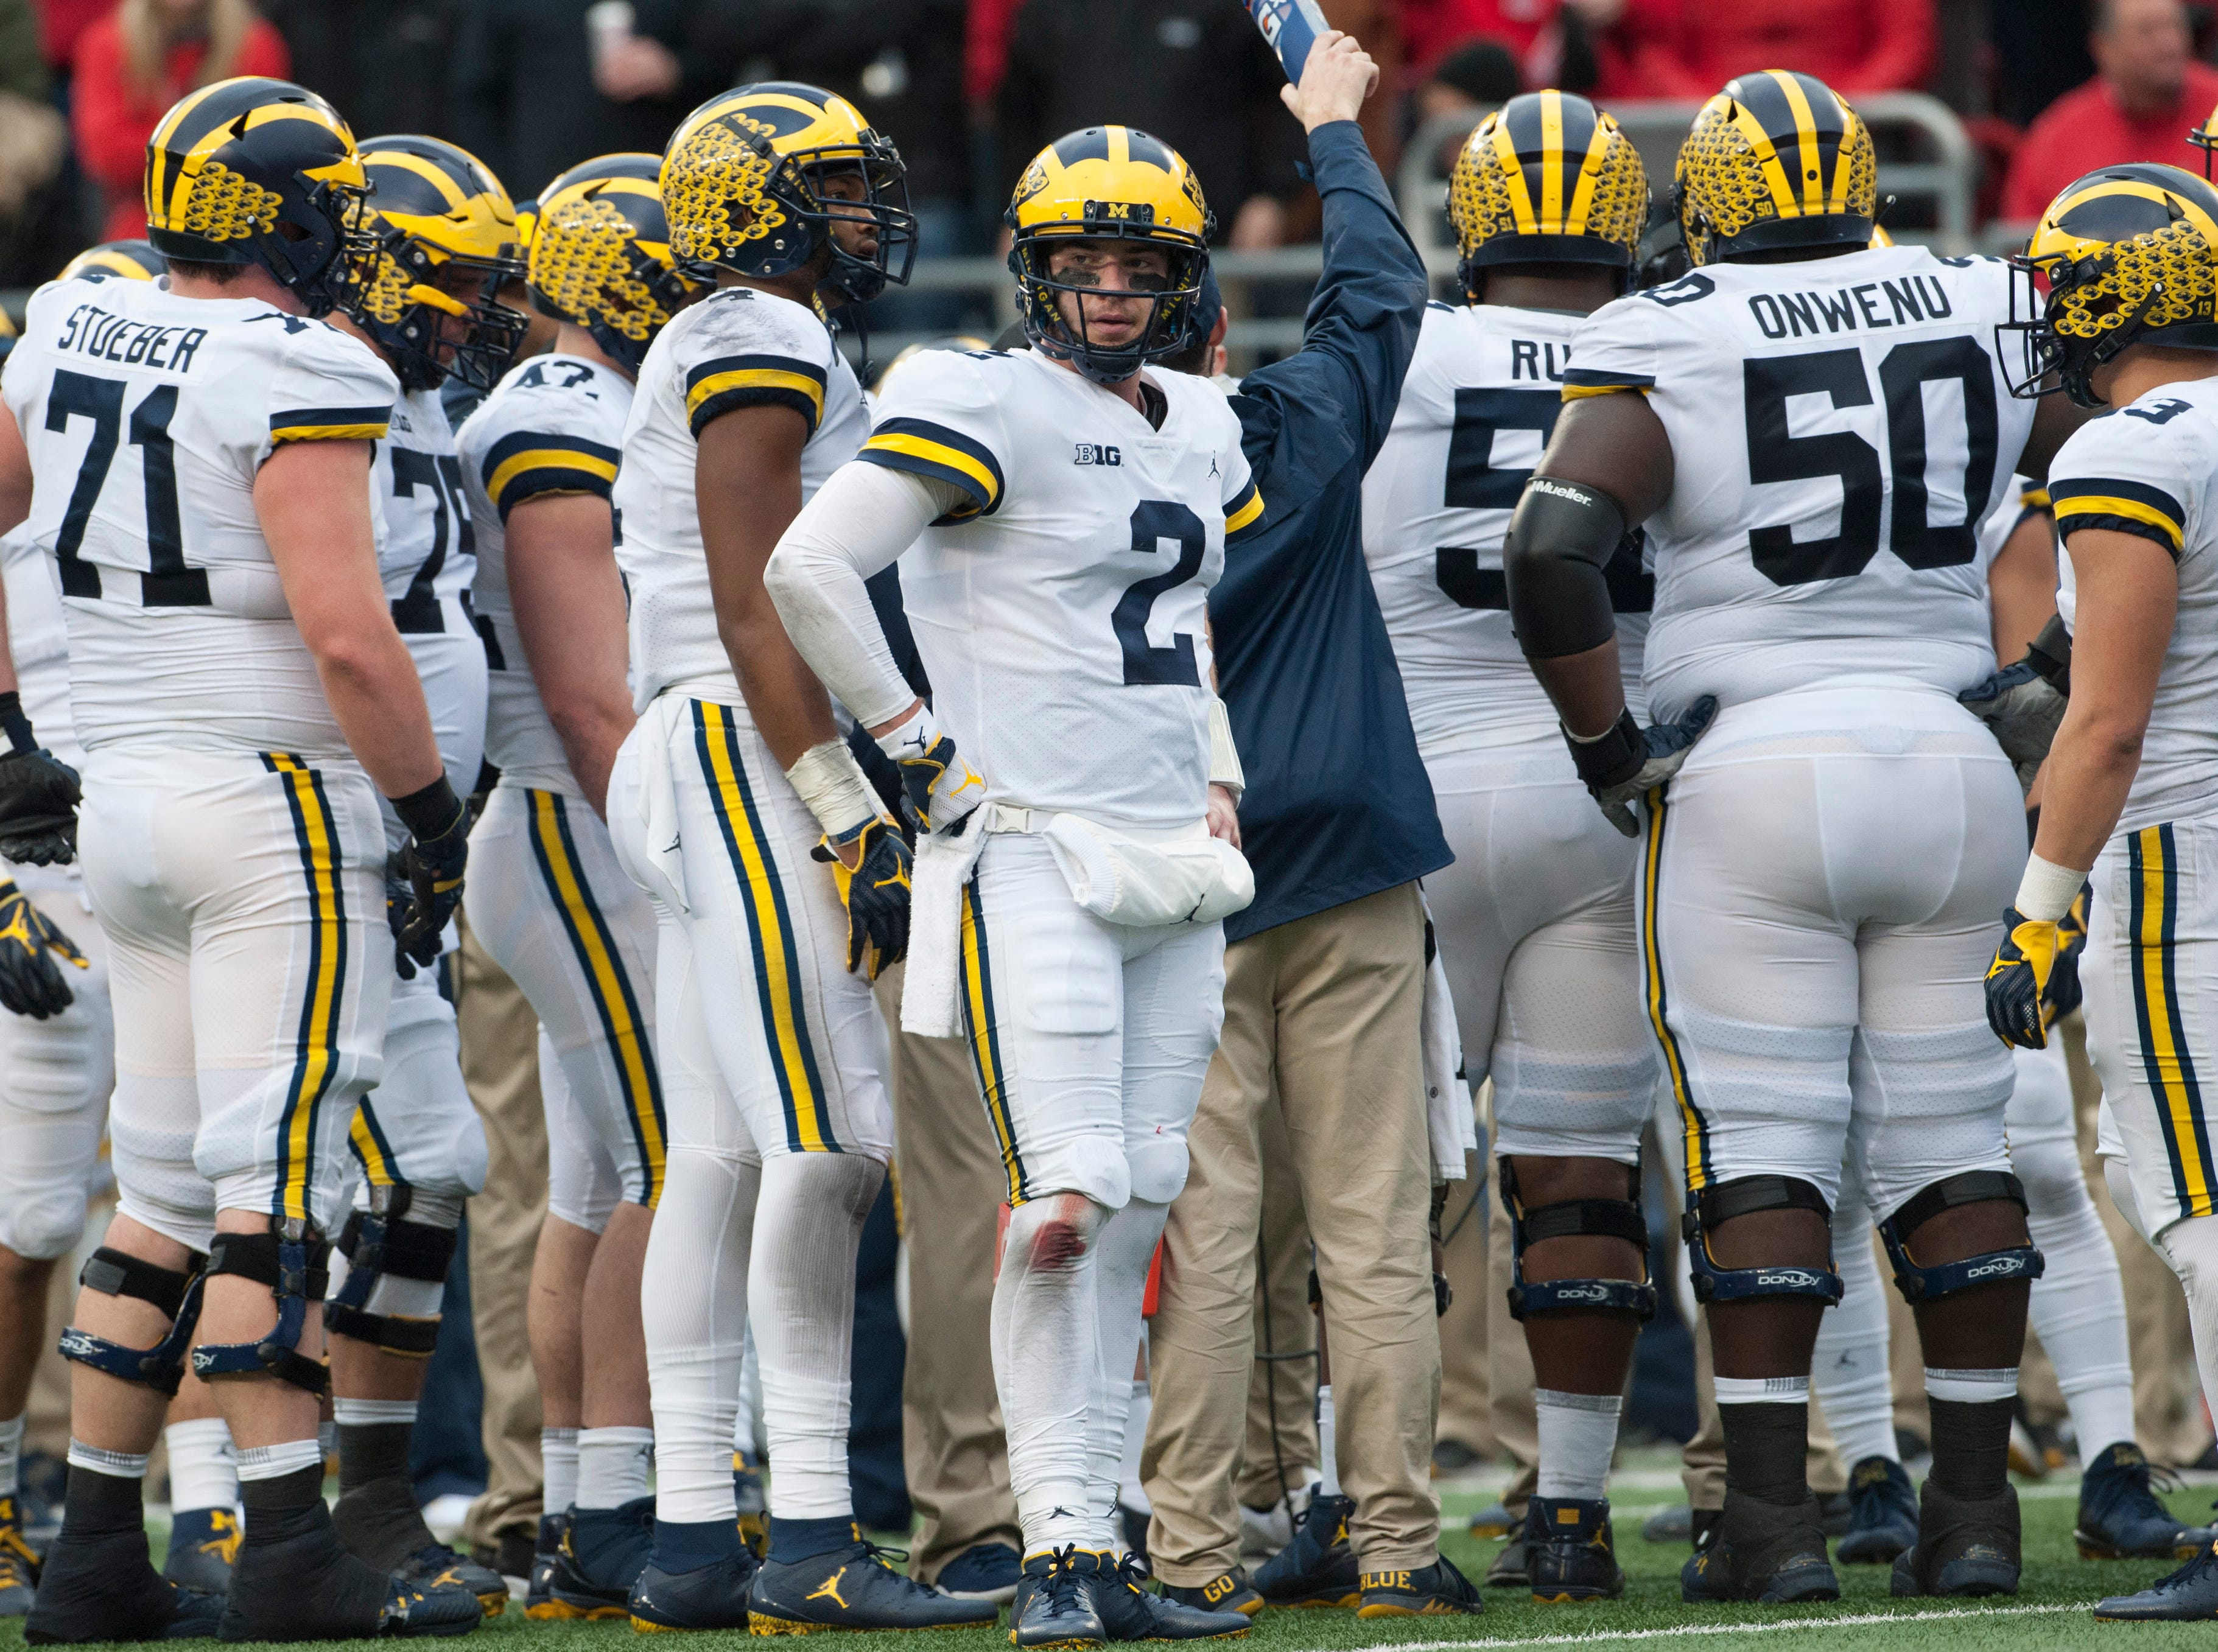 2. Michigan (10-2, 8-1) – It all came crashing down in the most unexpected way for the Wolverines as their defense was dismantled by Ohio State. It ended Michigan's 10-game winning streak, dashed its playoff hopes and left the Wolverines still seeking a Big Ten title that has eluded them since 2004. A potential spot in the Rose Bowl will be of little consolation as coach Jim Harbaugh is now 0-4 vs. the Buckeyes. Last week: 1.